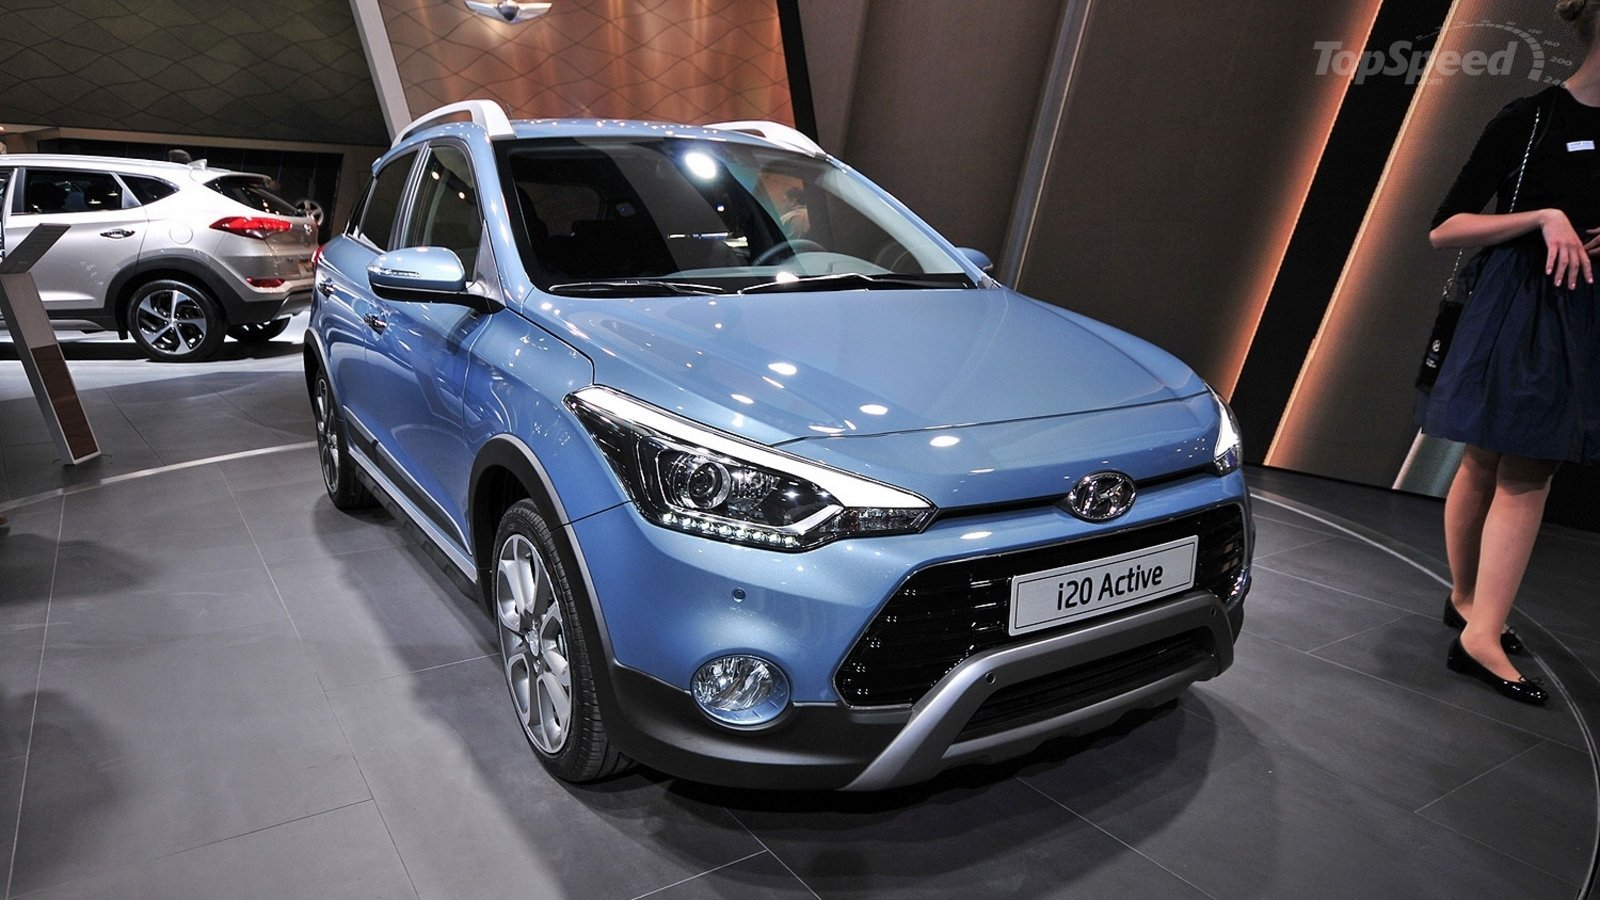 2016 hyundai i20 active news top speed. Black Bedroom Furniture Sets. Home Design Ideas